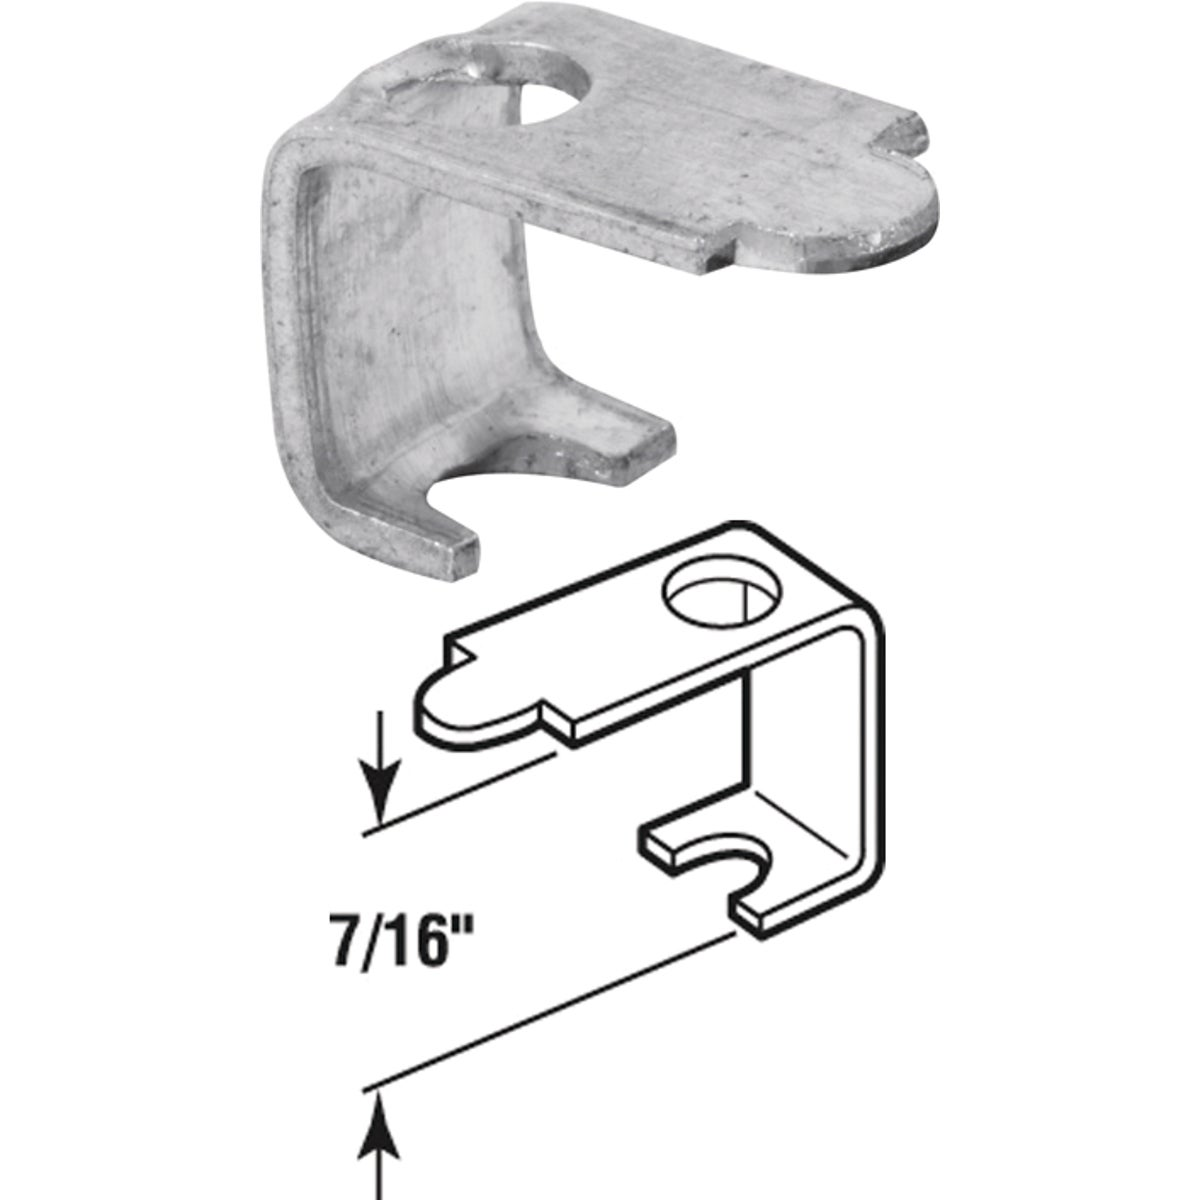 WINDOW CASEMENT CLIPS - 182935 by Prime Line Products